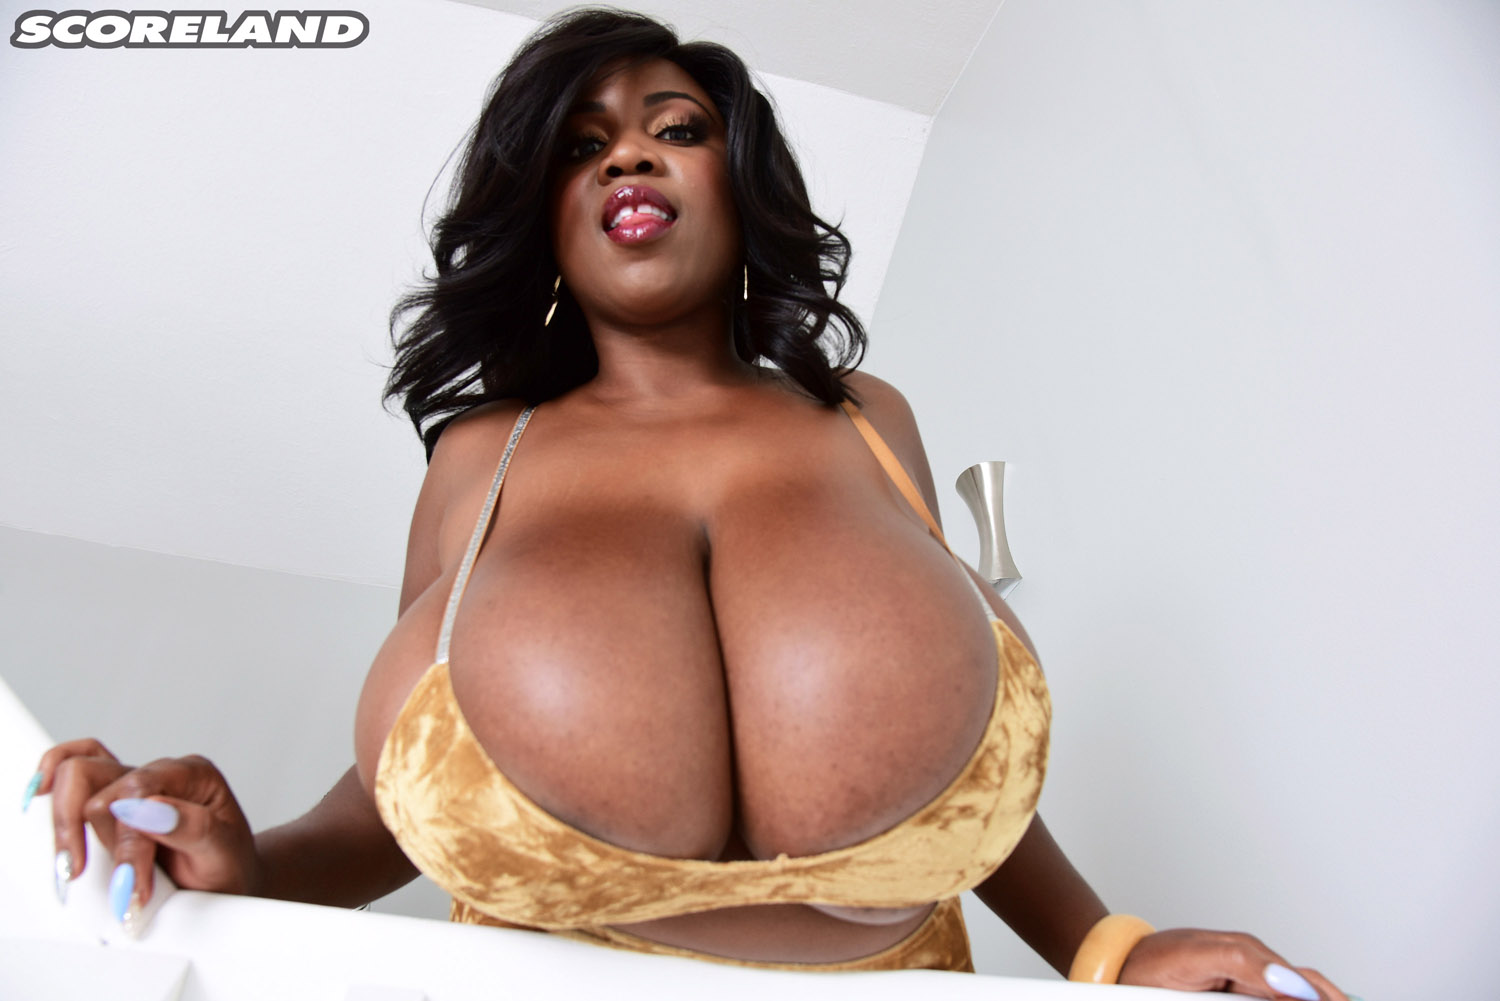 Biggest breasts ever on a 9 month pregnant milf - 3 10